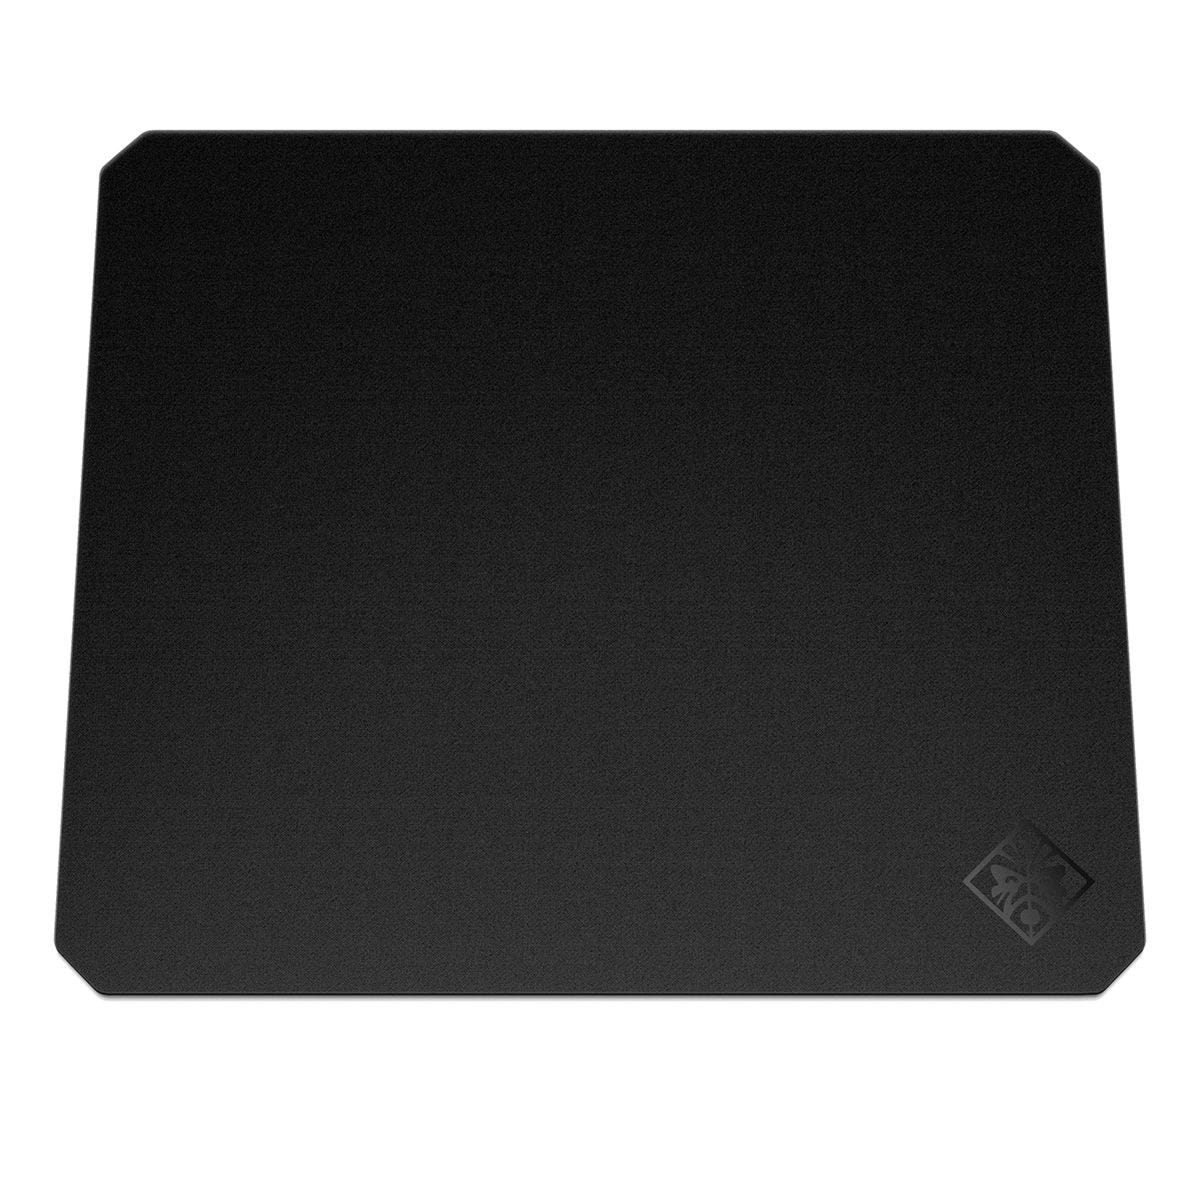 OMEN by HP Mouse Pad 200